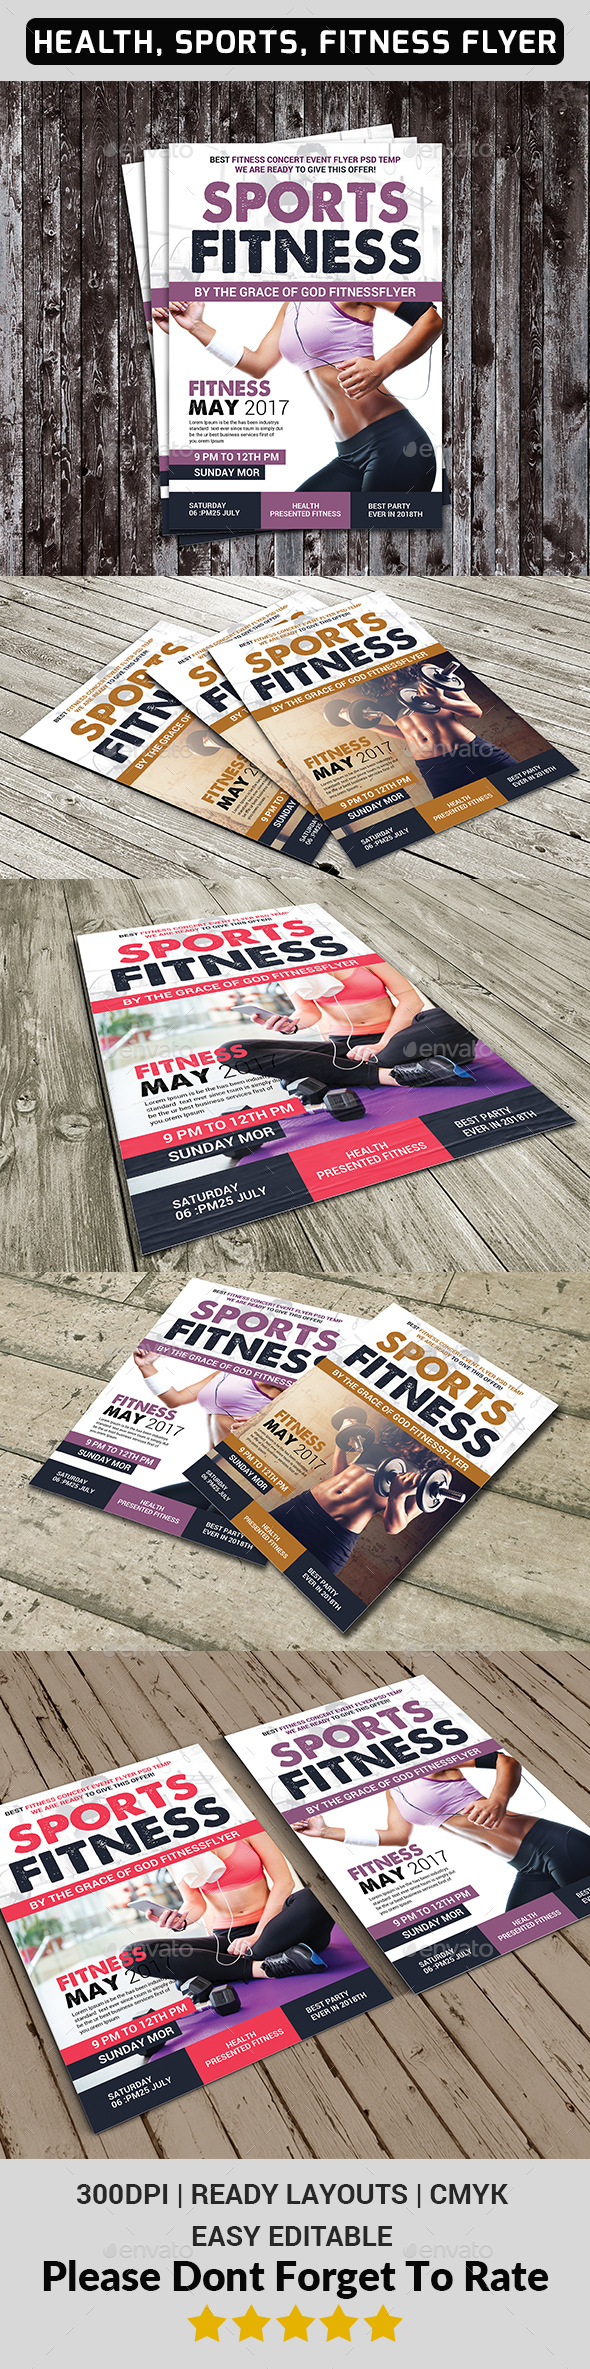 Health, Sports, Fitness Flyer - Sports Events